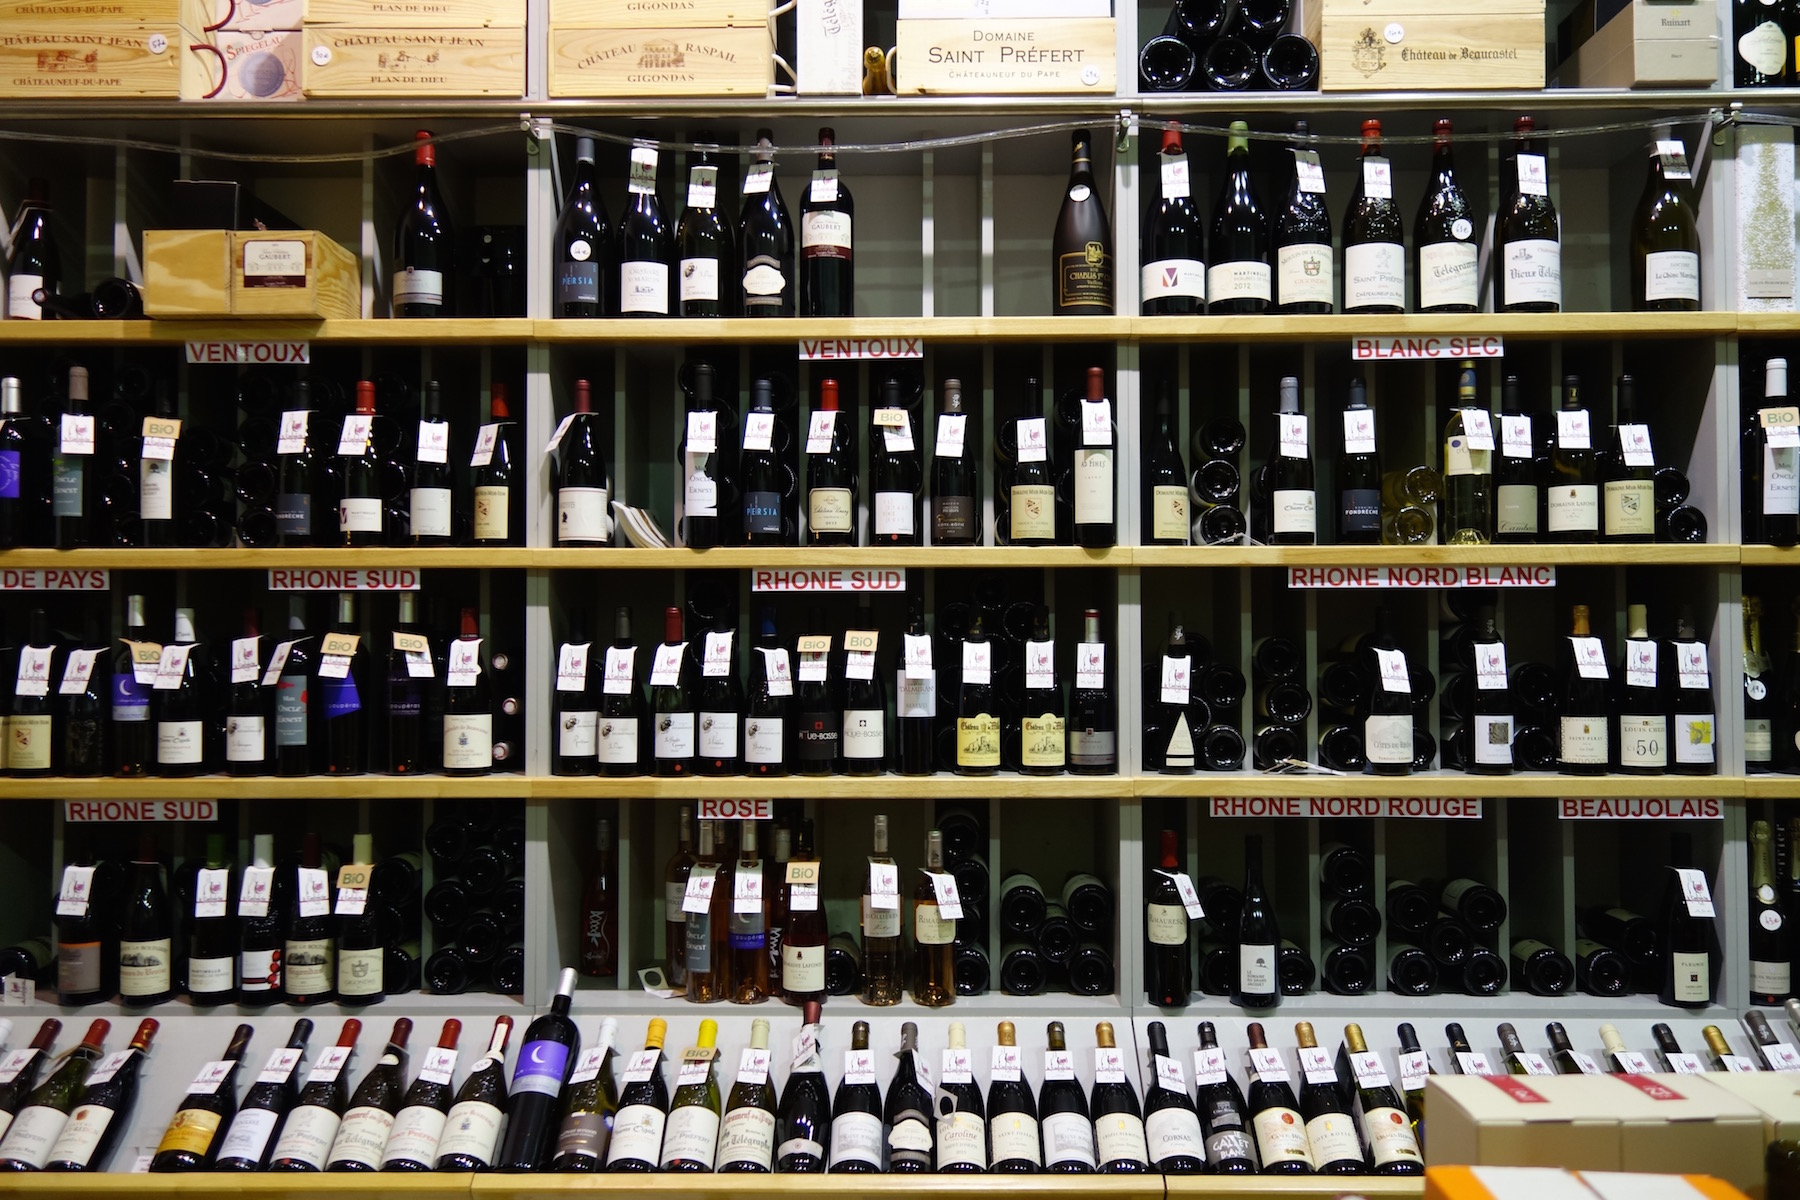 Selecting French Wines: The Steven Spurrier Effect